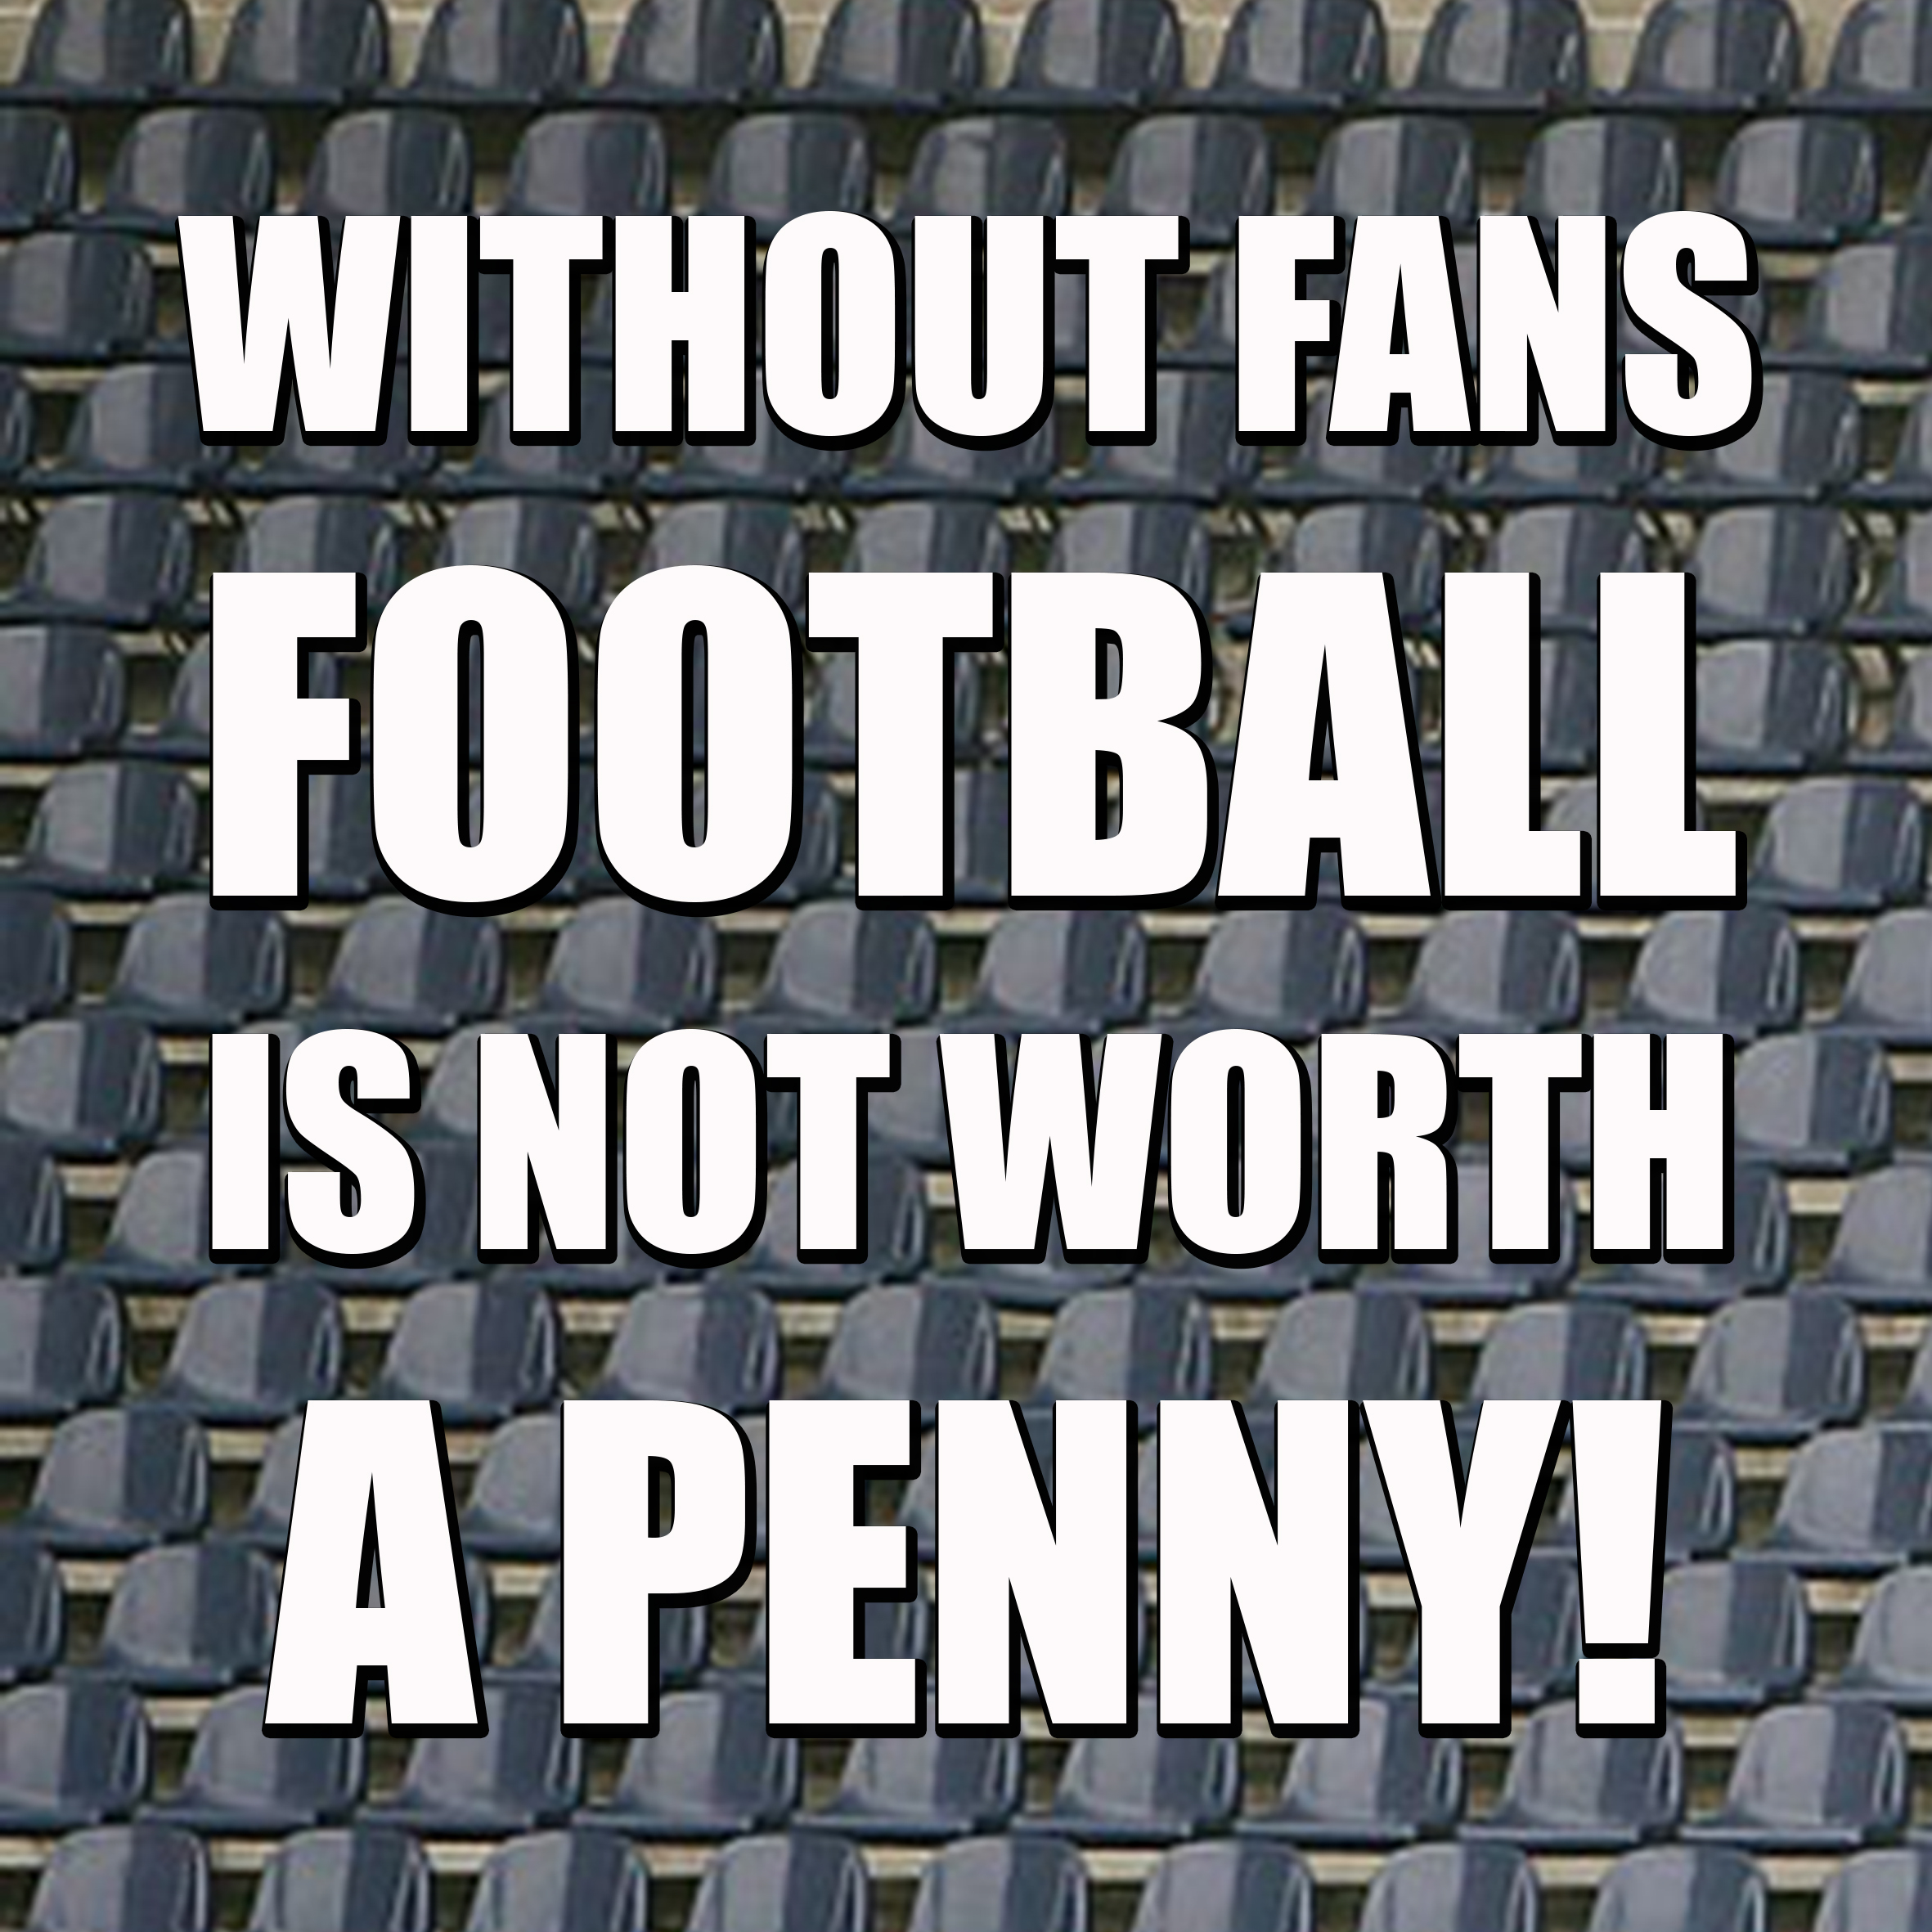 Without Fans Football Is Not Worth A Penny